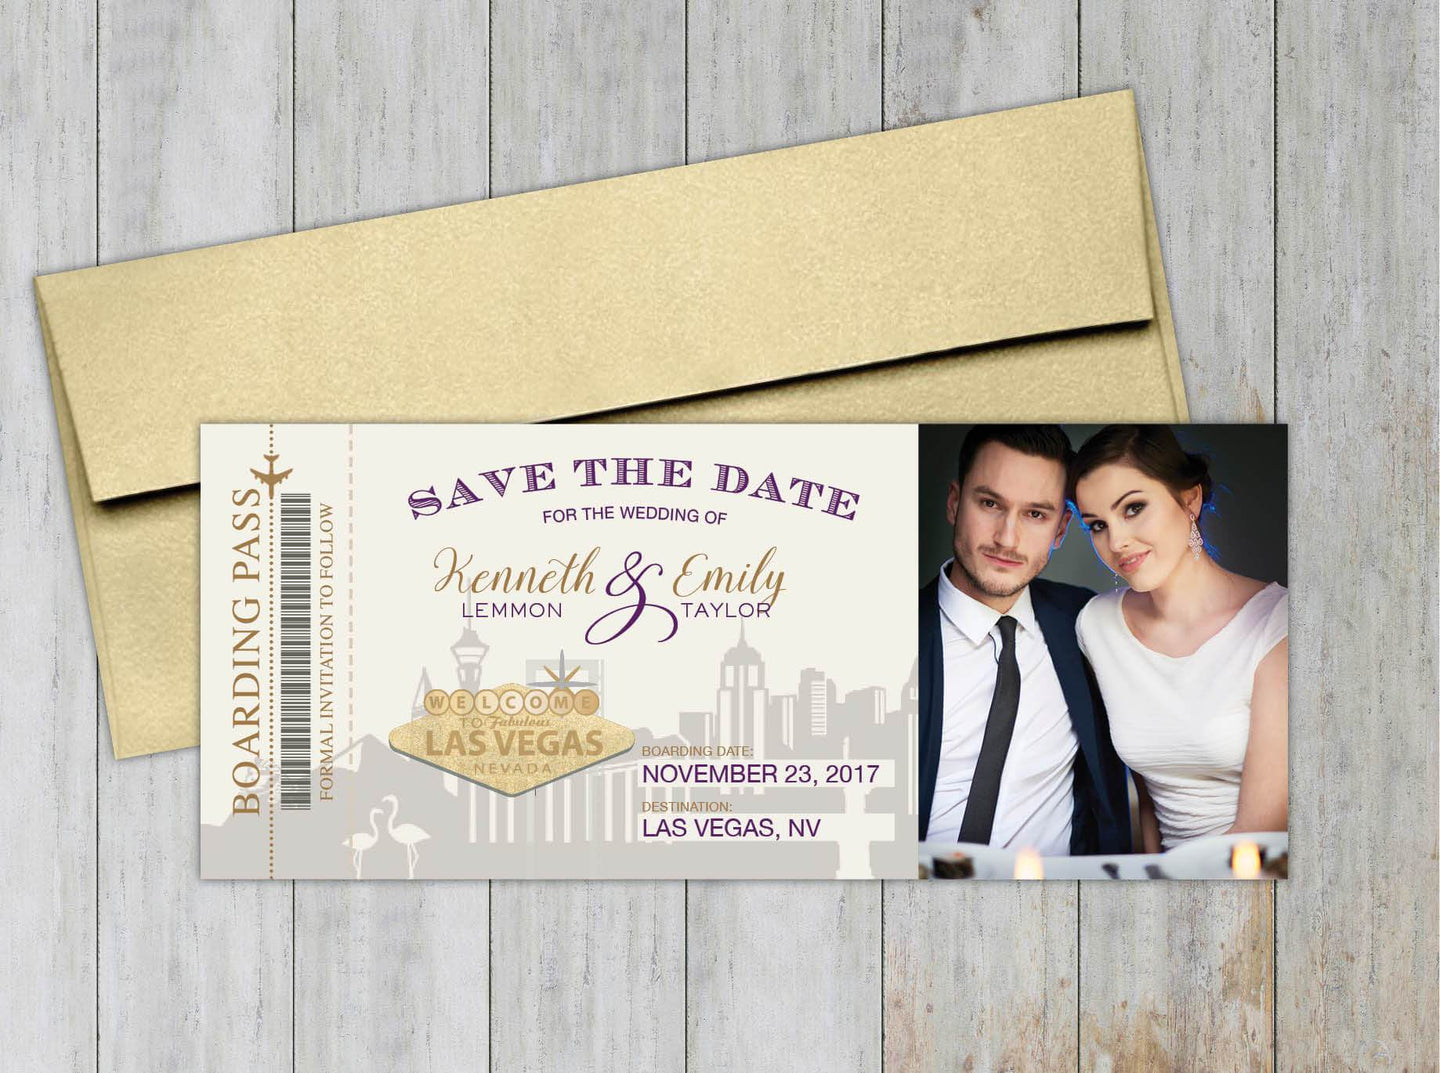 Las Vegas Boarding Pass Save the Date